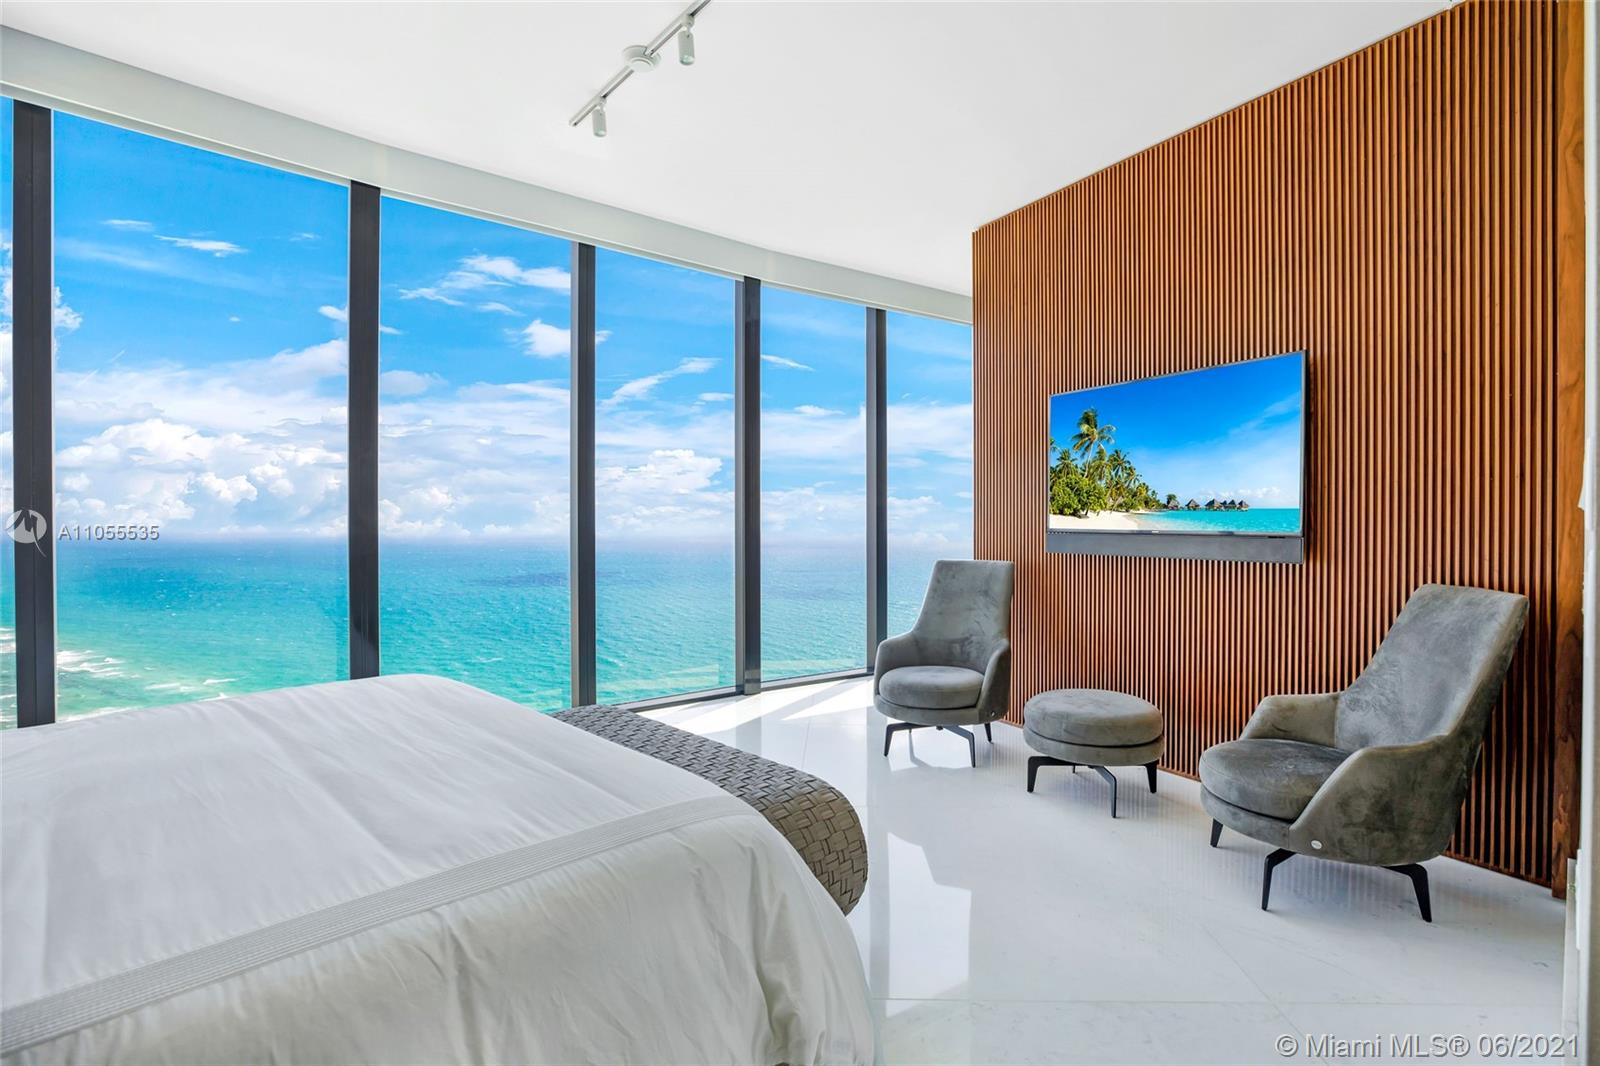 18555 Collins Ave, Unit #4305 Luxury Real Estate